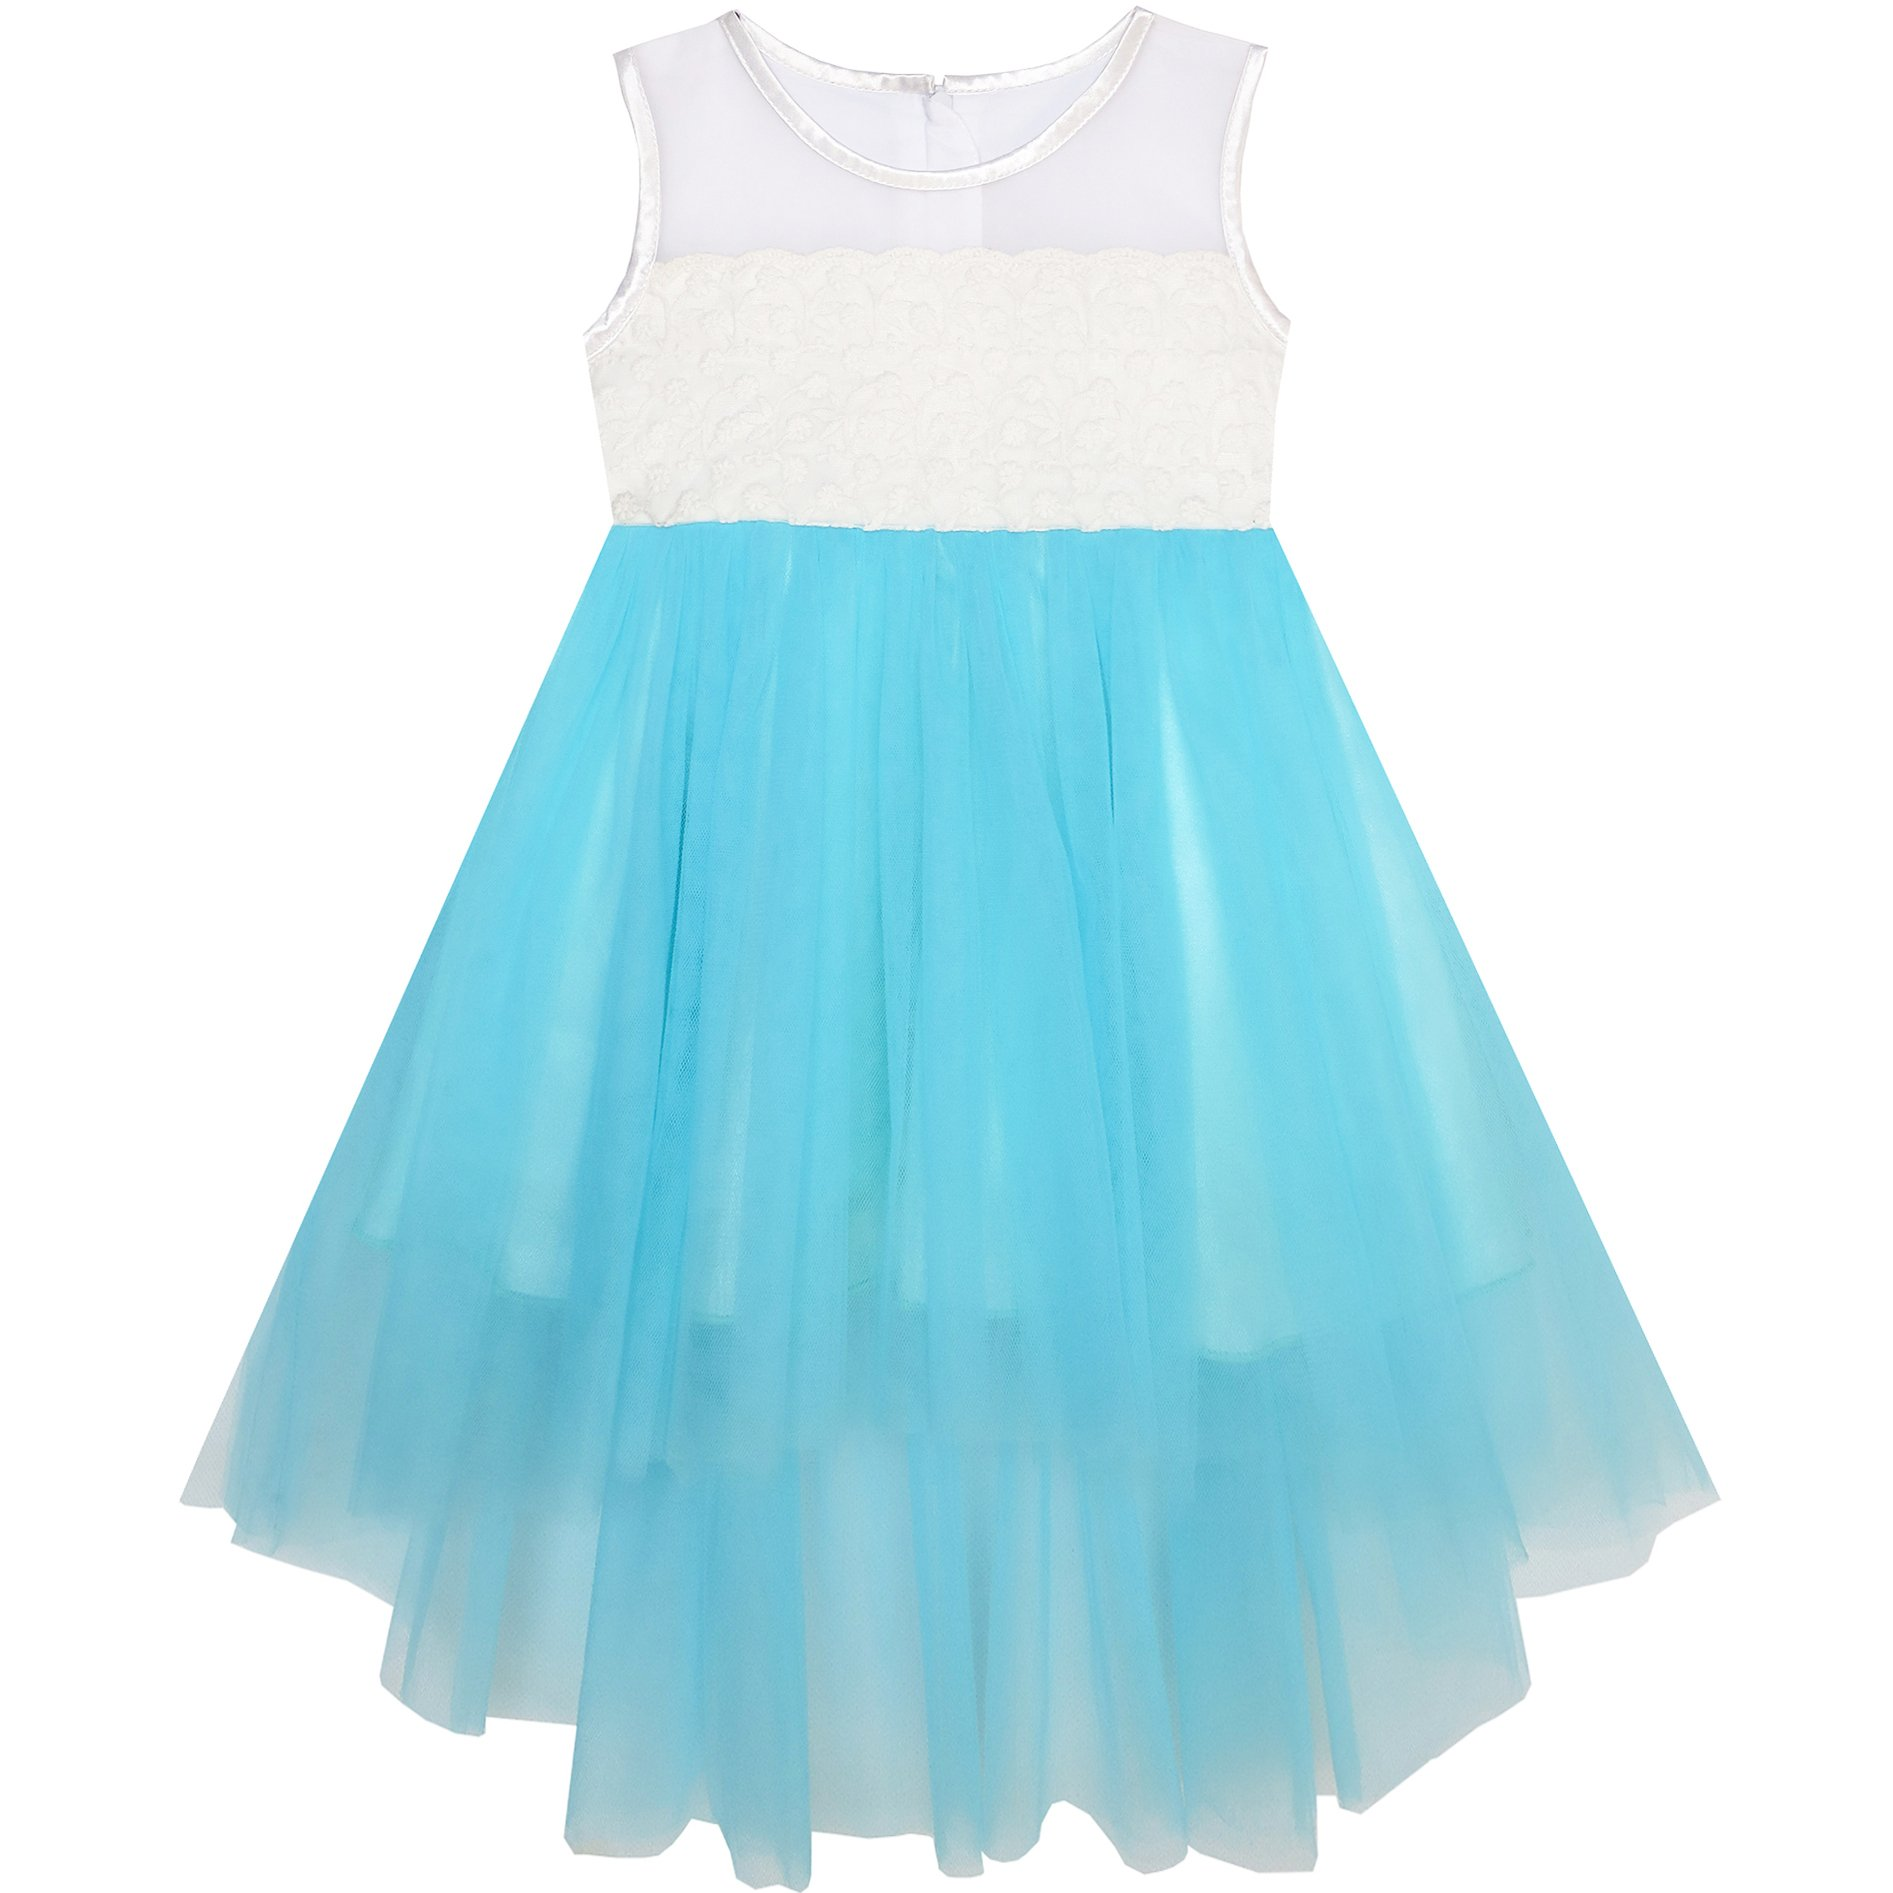 KH83 Baby Girls Dress Sparkling Lace Sequin Pageant Wedding Birthday Size 18-24 M